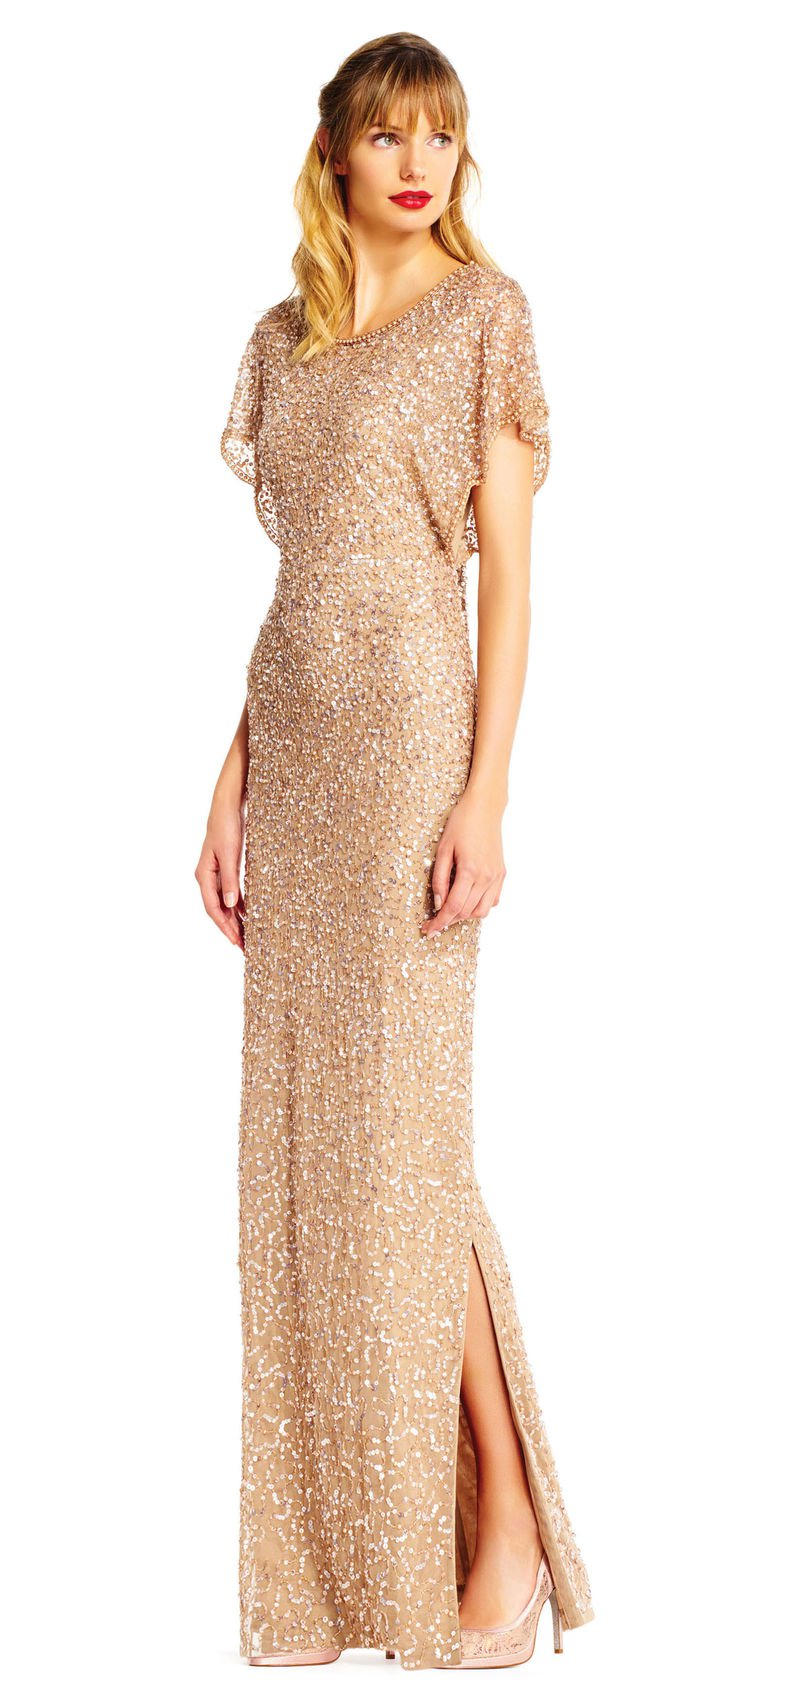 Adrianna Papell Sequin Beaded Gown with Flutter Sleeves - $172.99